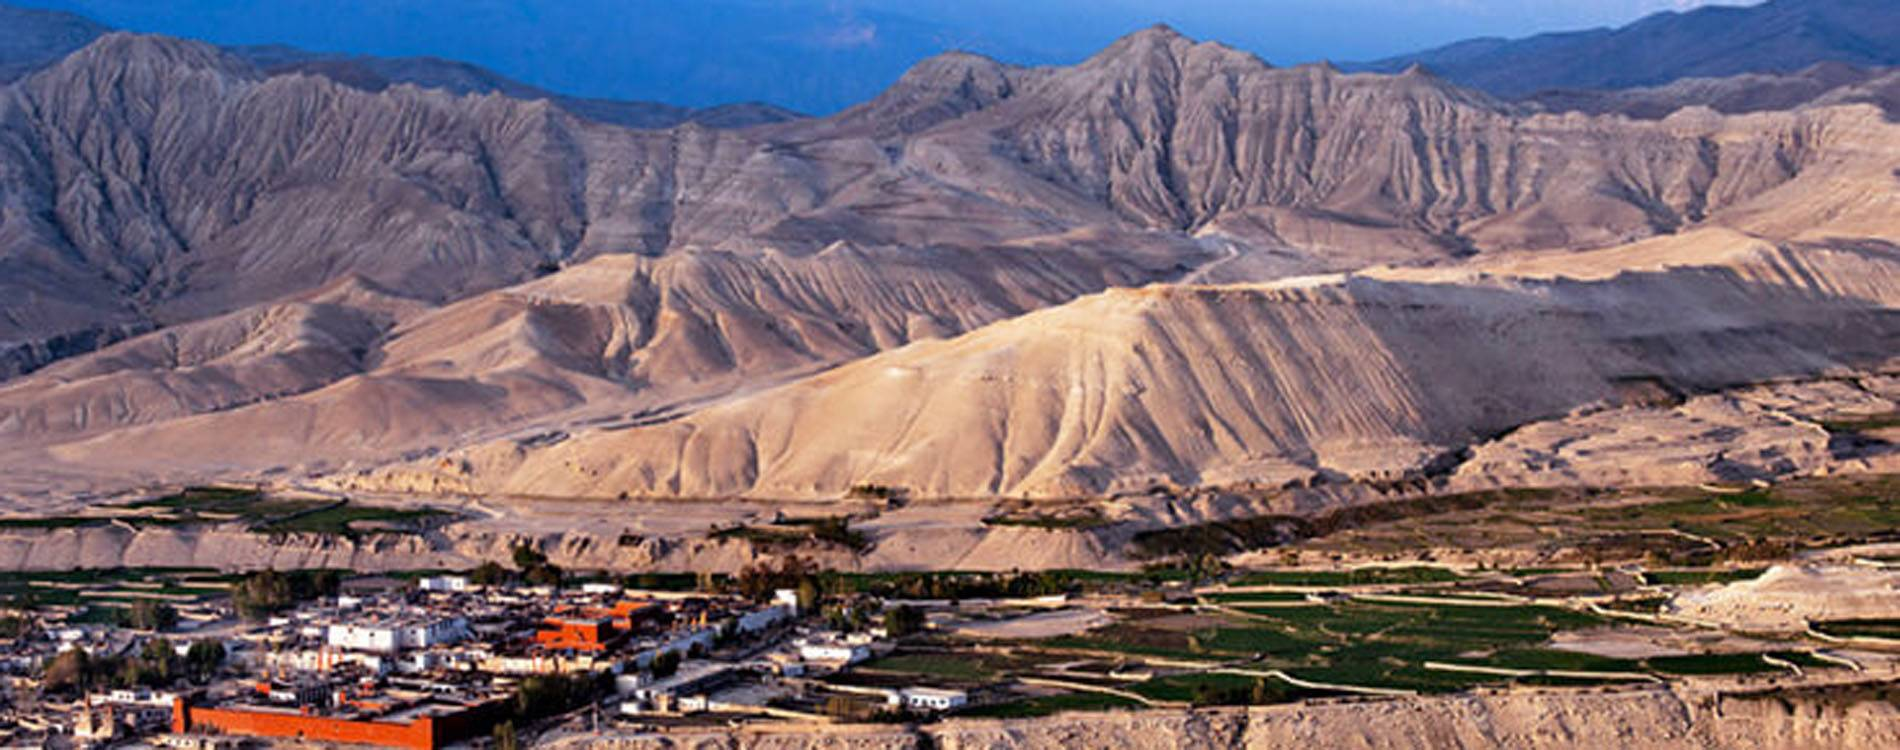 14 Days Upper Mustang Trek